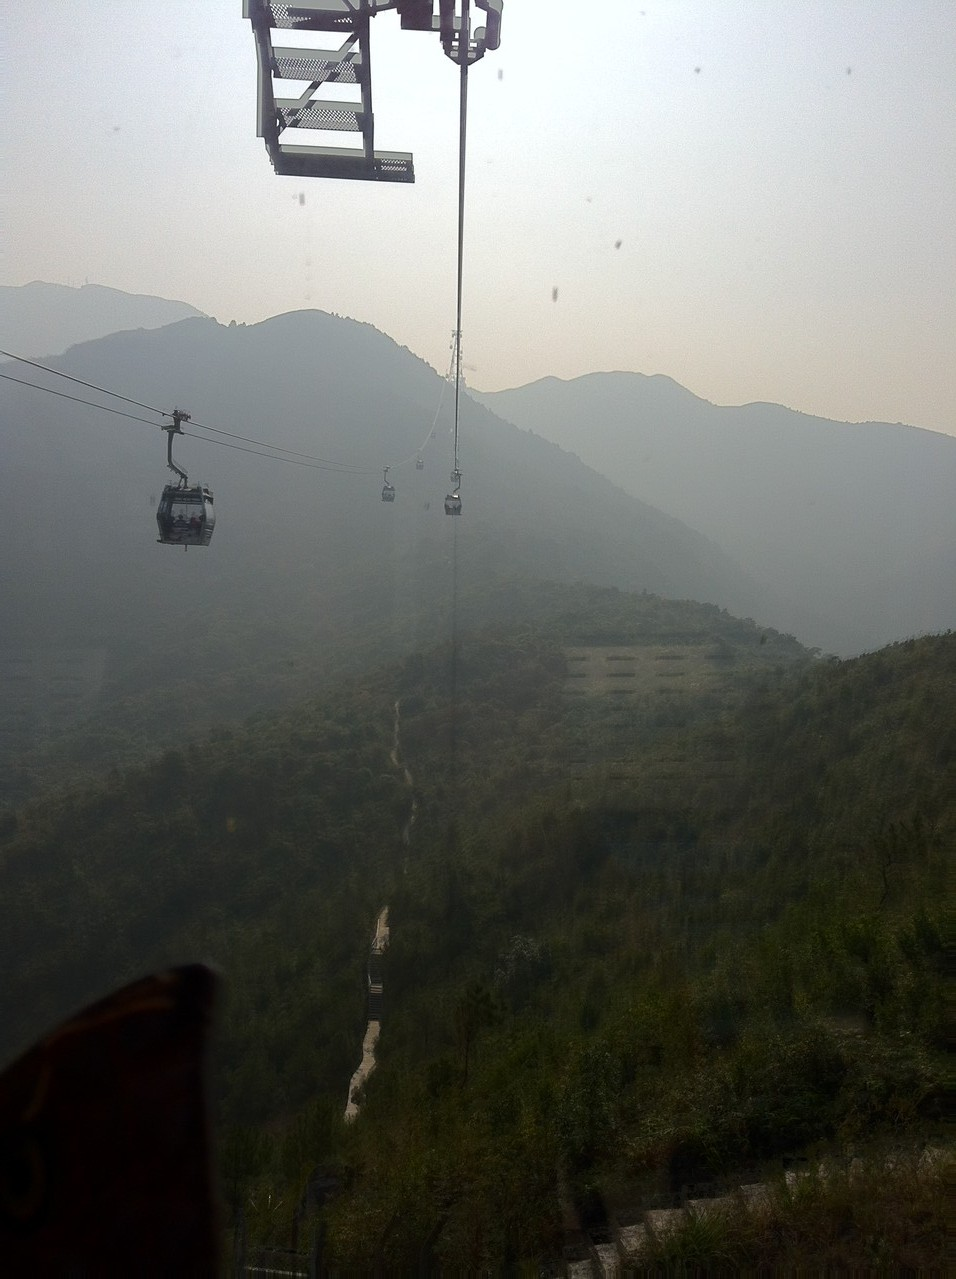 This is actually the longest single cable car ride I've been on ... and I live in Switzerland! It doesn't simply go up one mountain, it travels across them ... — at Ngong Ping Cable Car.